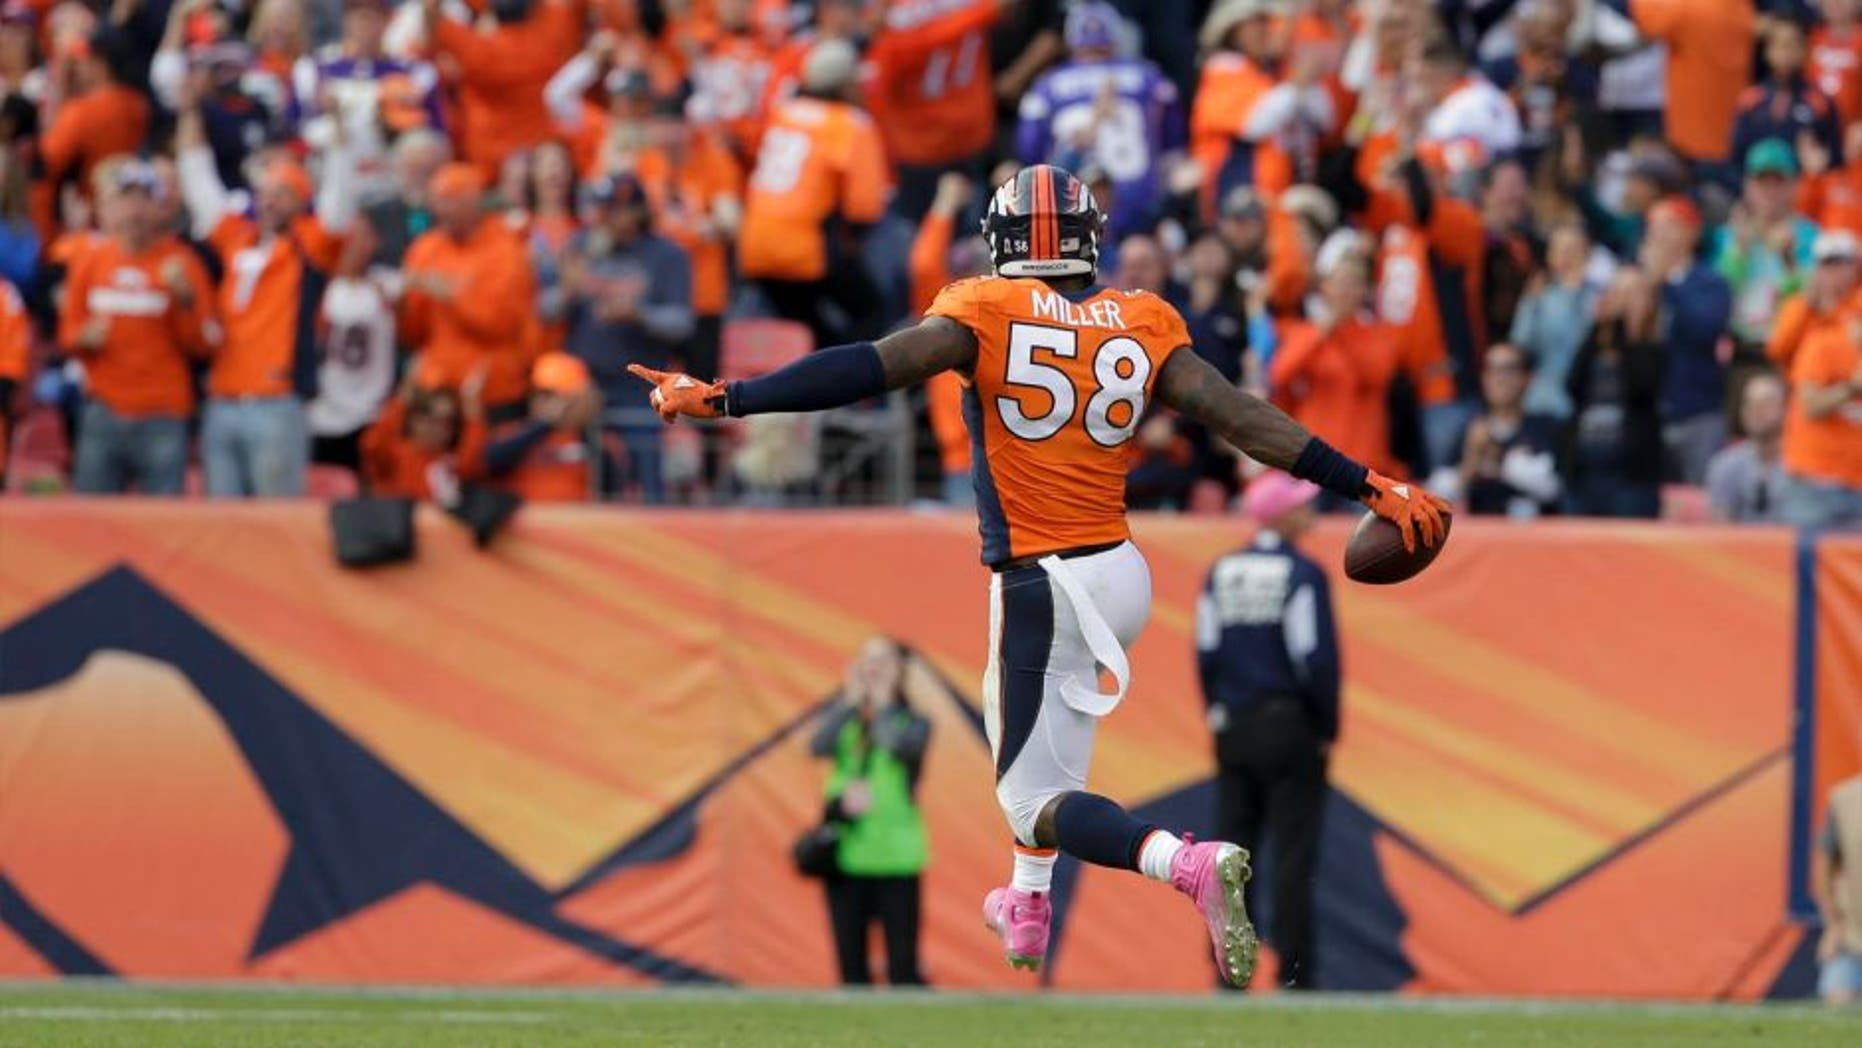 Denver Broncos outside linebacker Von Miller celebrates after sacking Minnesota Vikings quarterback Teddy Bridgewater during the second half in Denver on Sunday, Oct. 4, 2015.